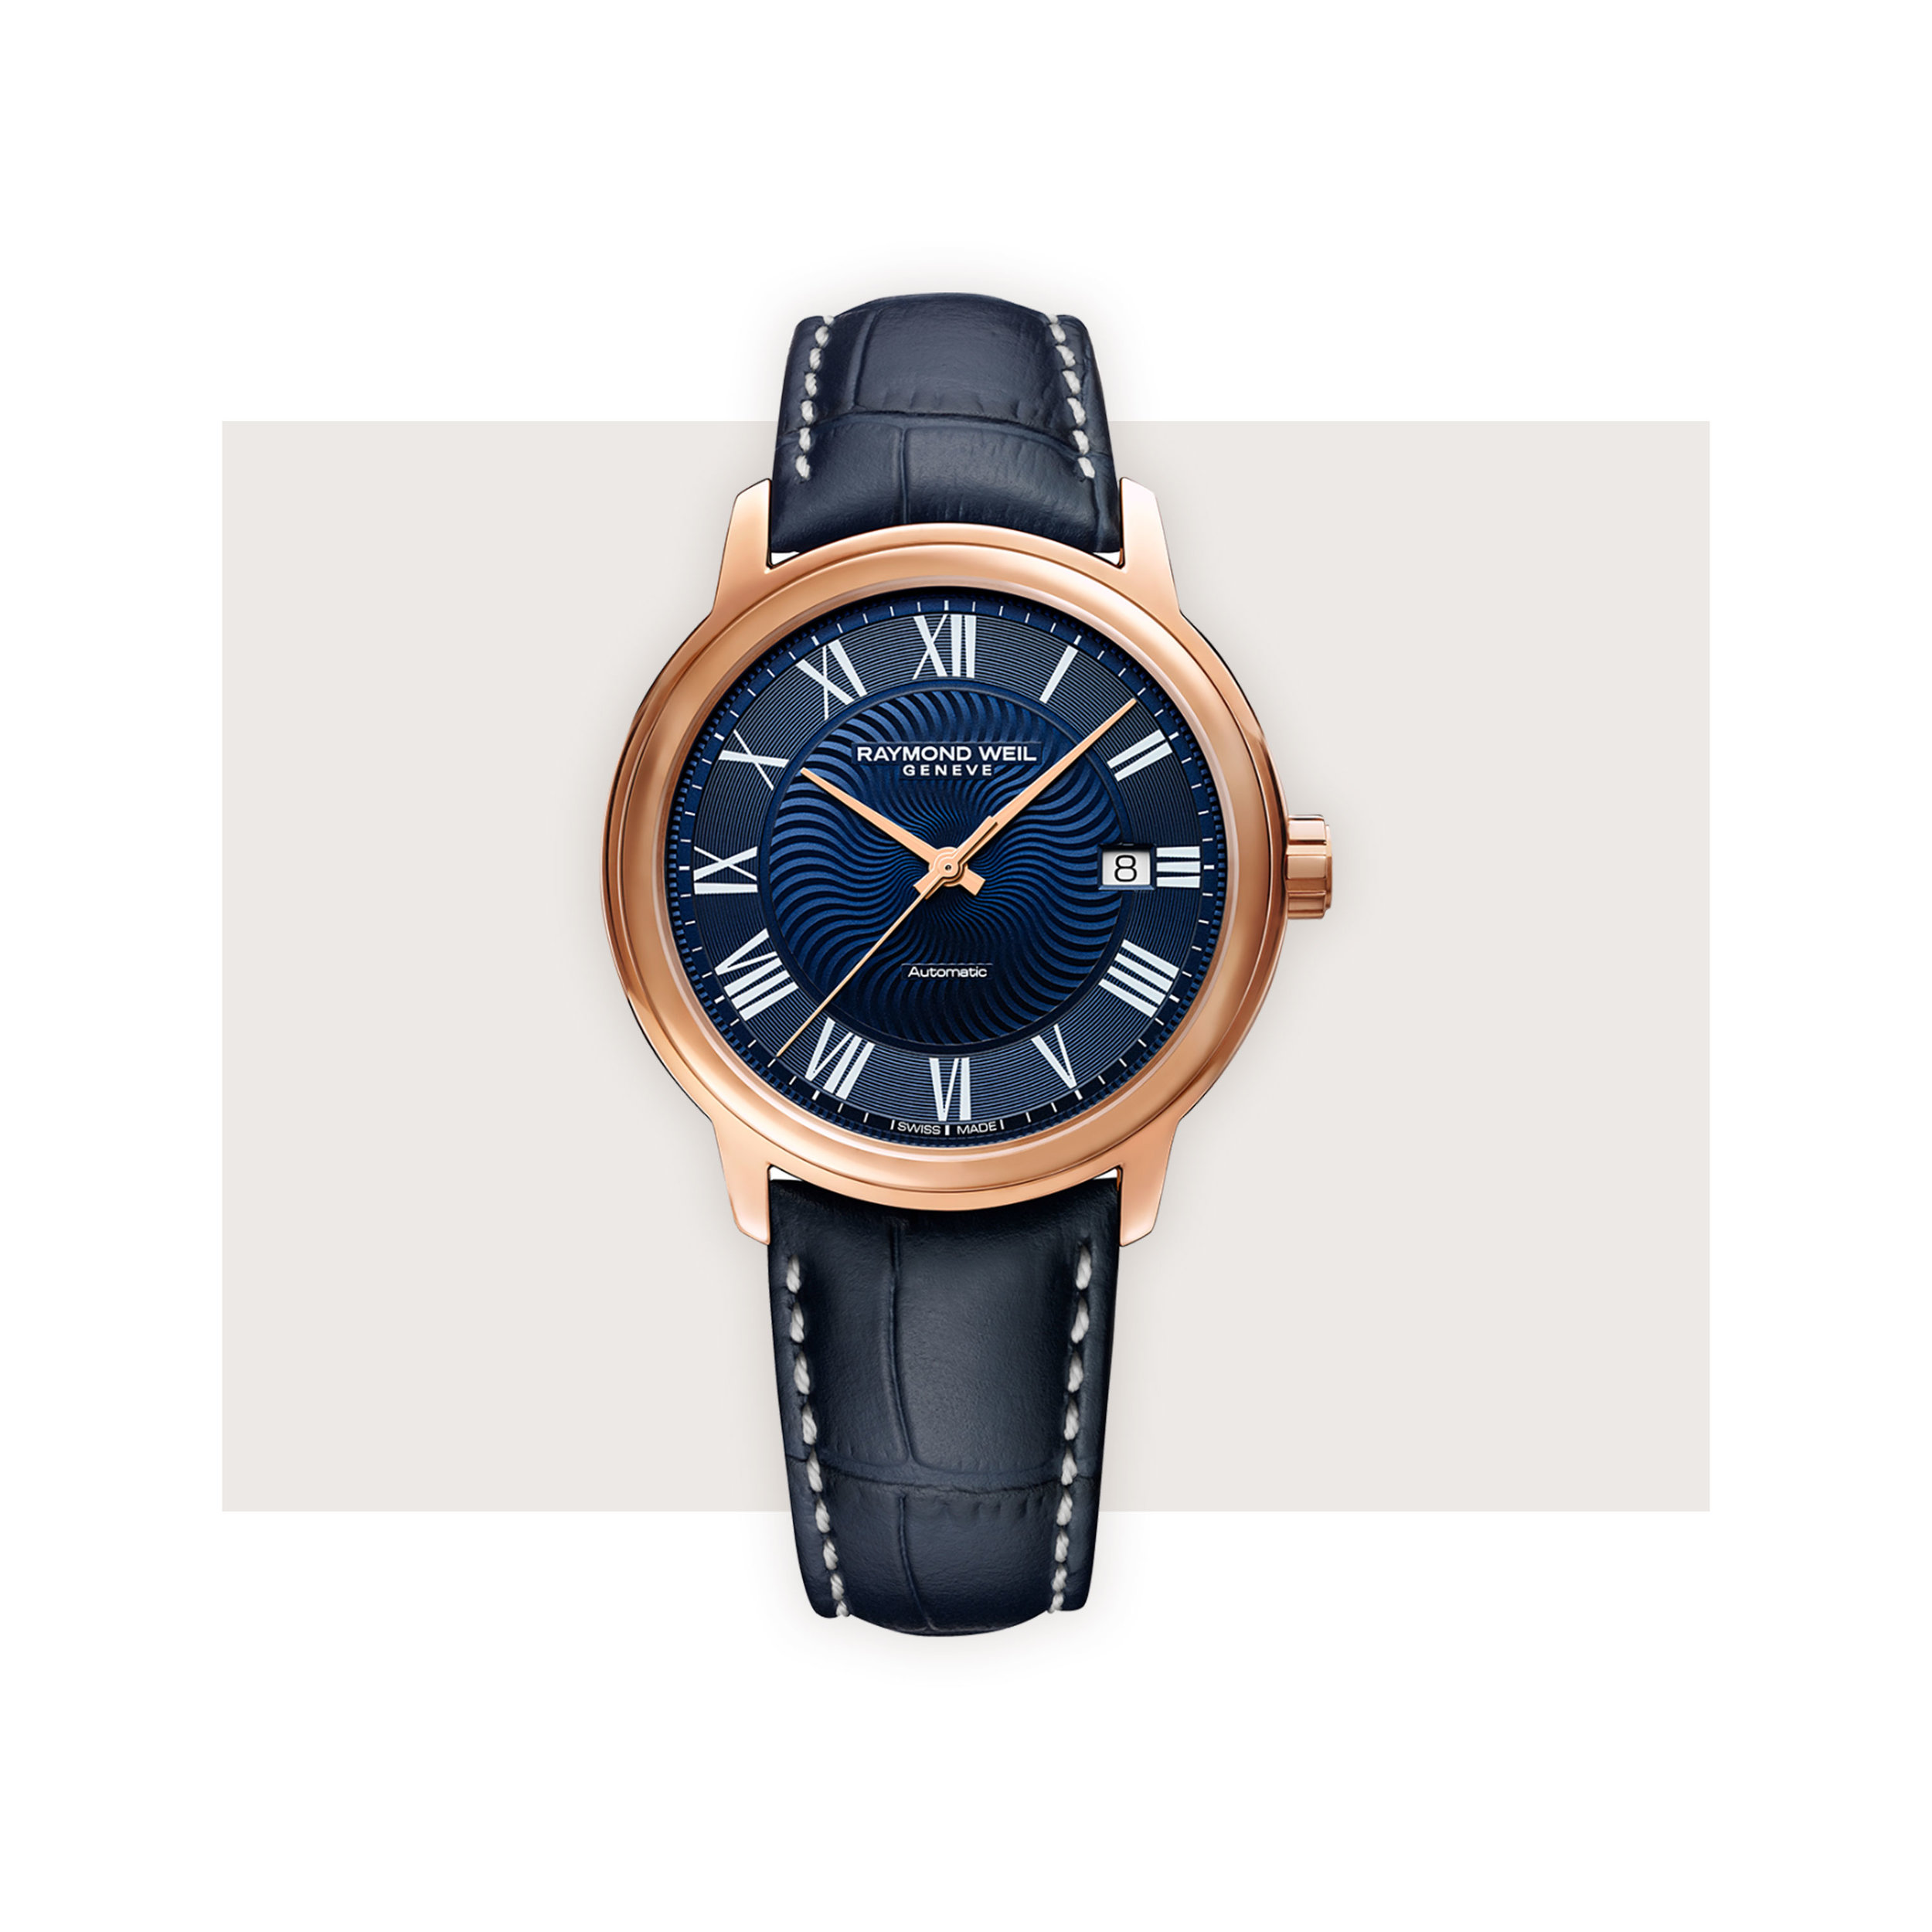 Raymond Weil - Dark blue and rose gold provide a beautiful juxtaposition on Raymond Weil's 40 mm automatic Maestro. The delicate wave like pattern on the dial, which adds just the right amount of detail, is inspired by blues music.Raymond Weil Maestro, $1,290; troverie.com